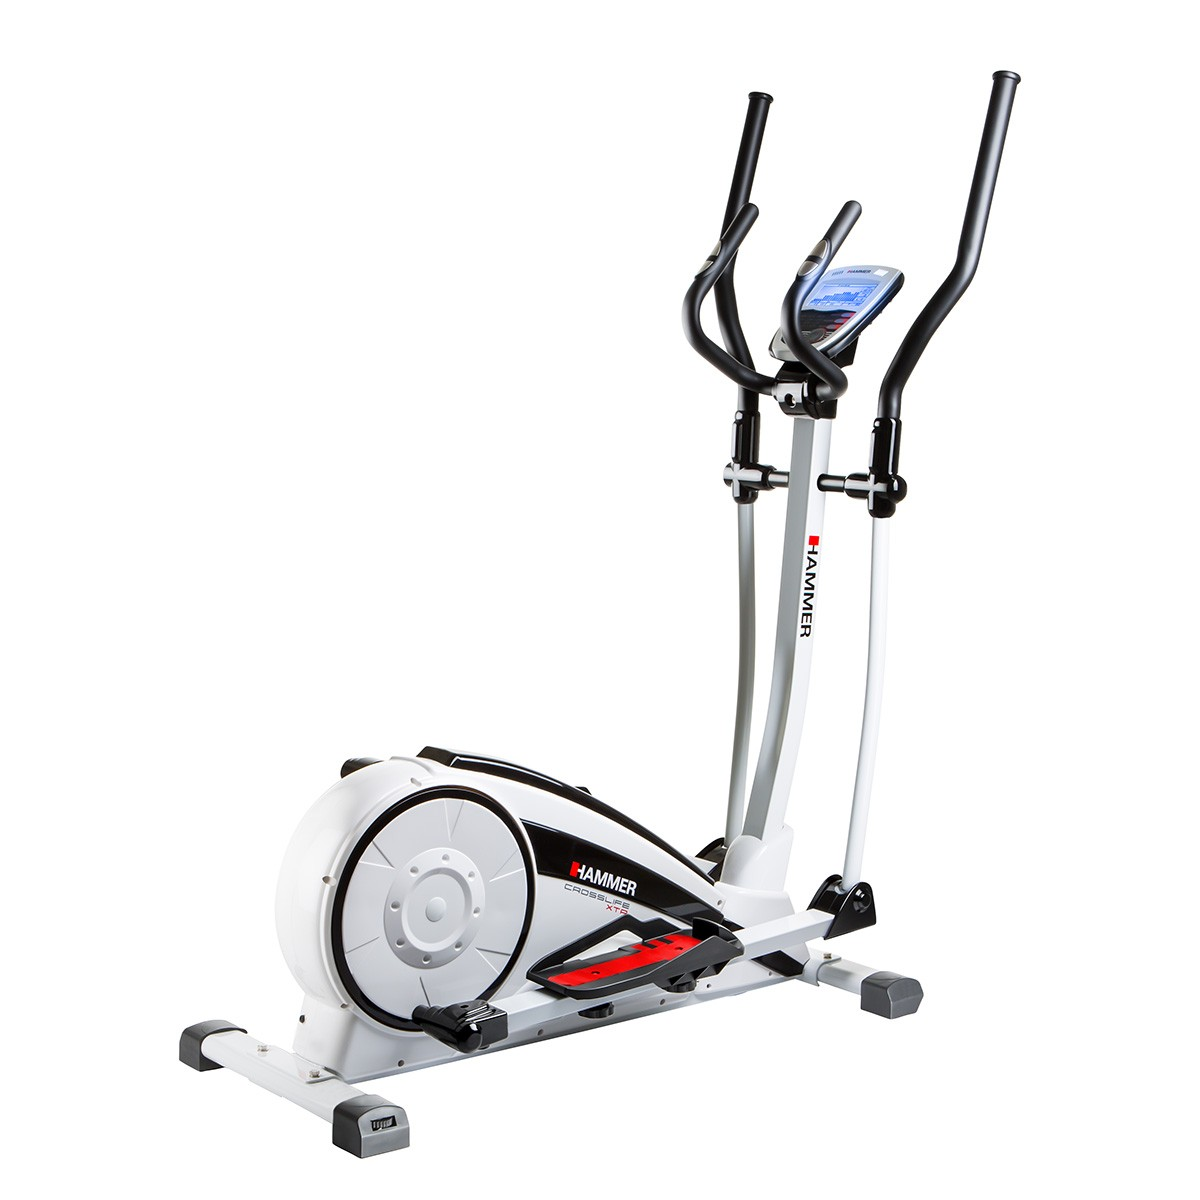 Hammer Ergometer Crosstrainer Crosslife BT Cardio Fitness Training Fitness & Jogging